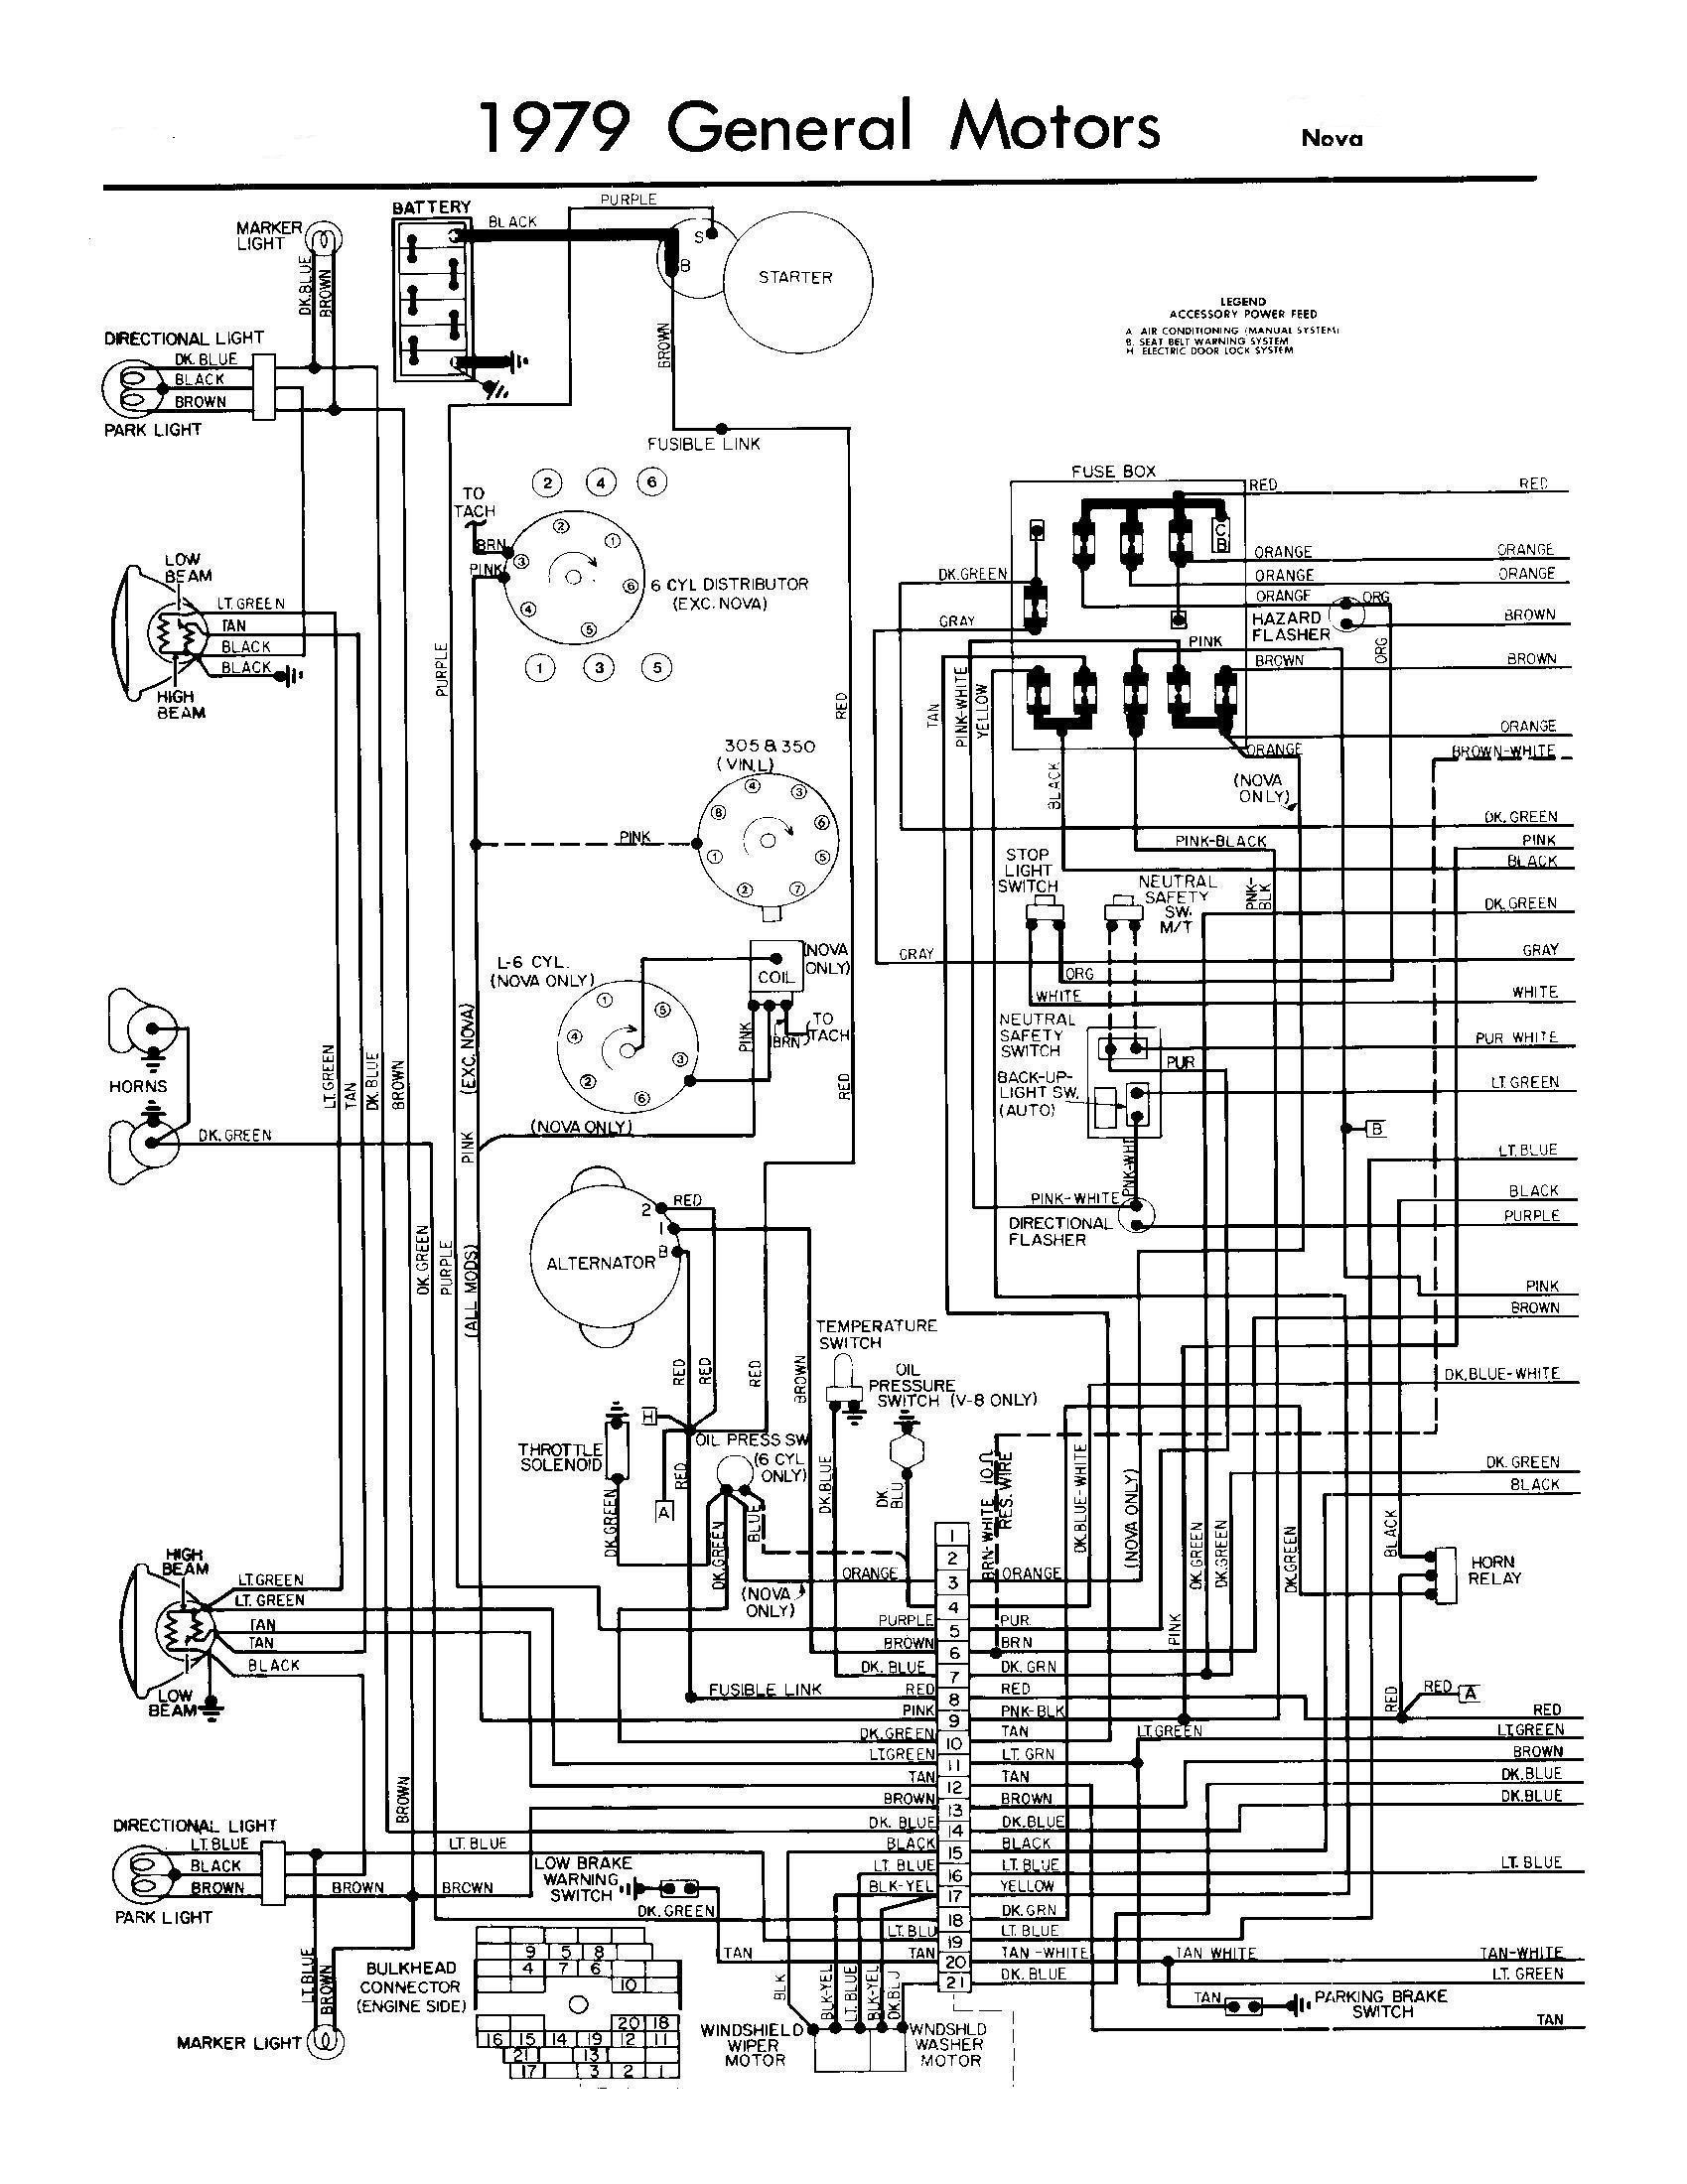 1975 gmc wiring diagram diy wiring diagrams u2022 rh newsmoke co 1994 gmc vandura 2500 wiring diagram 1972 gmc van wiring diagram